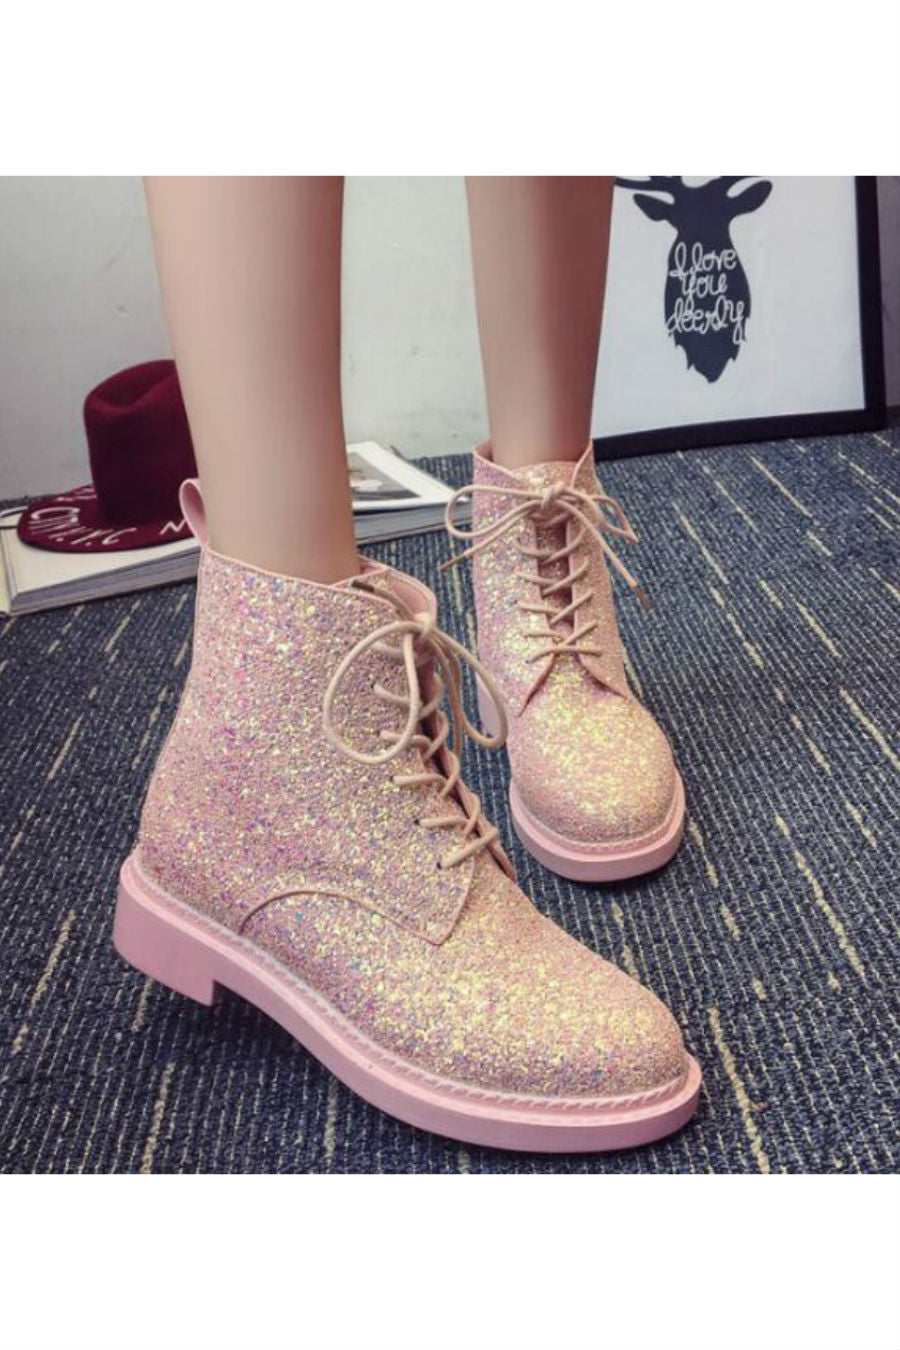 Lace Up Sequins Boots 💥 In Pink